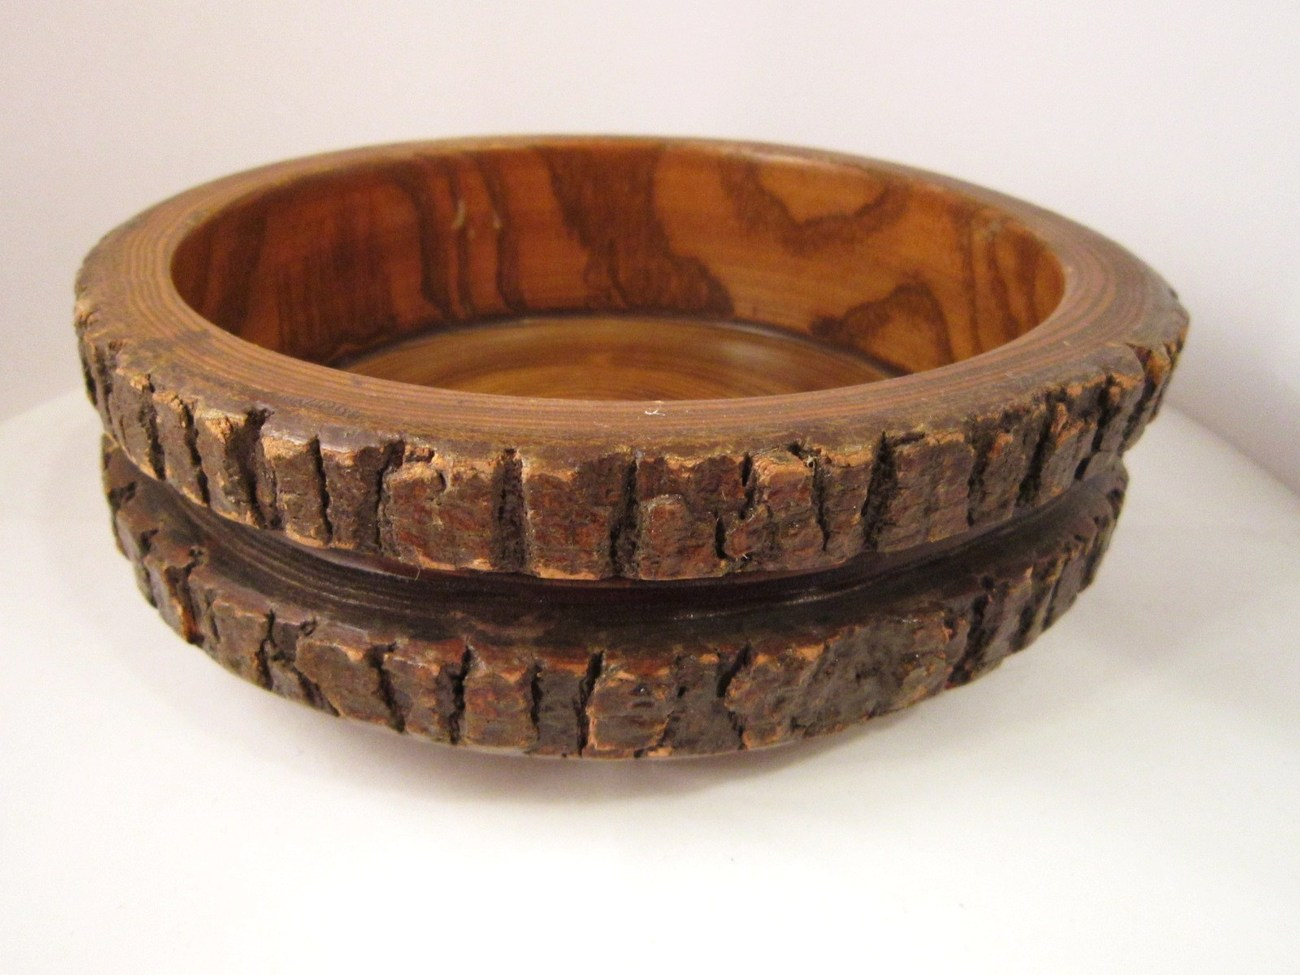 Rustic Wooden Stump Bowl  Natural Bark  Fine Grain  9 inches across